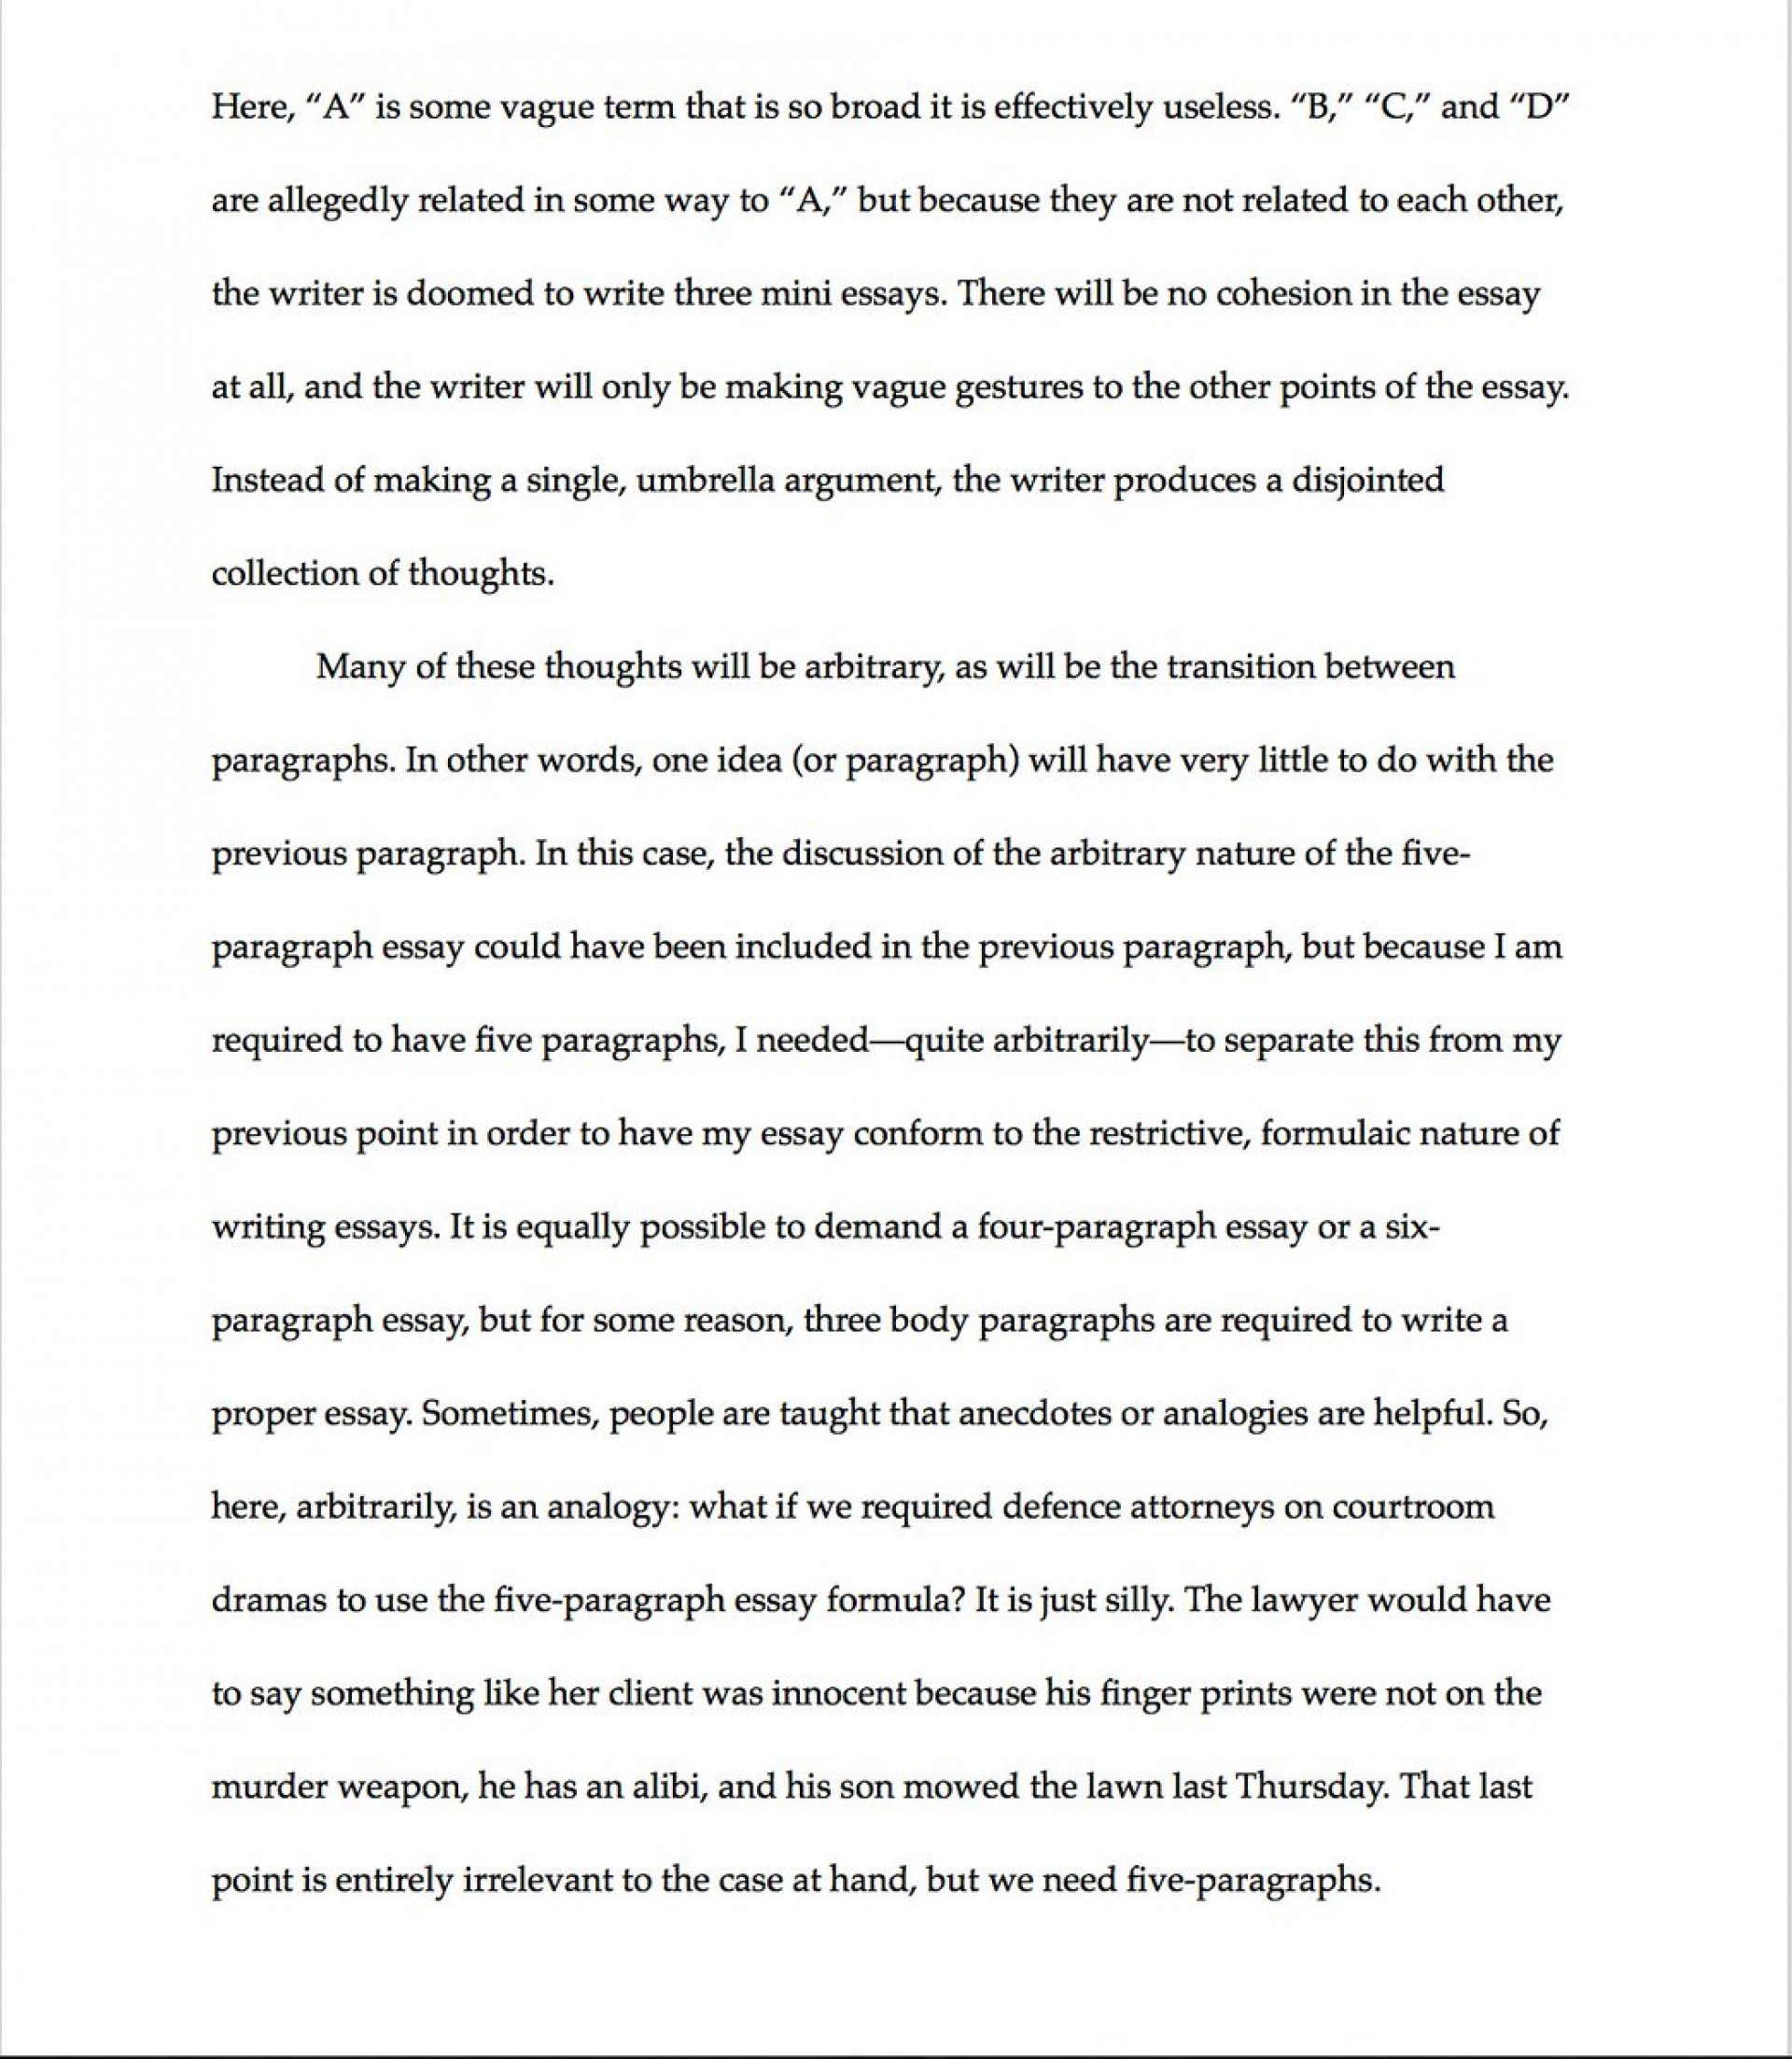 008 Essay Example How Many Paragraphs Are In Formidable A Argumentative Body Should Narrative Have Persuasive 1920